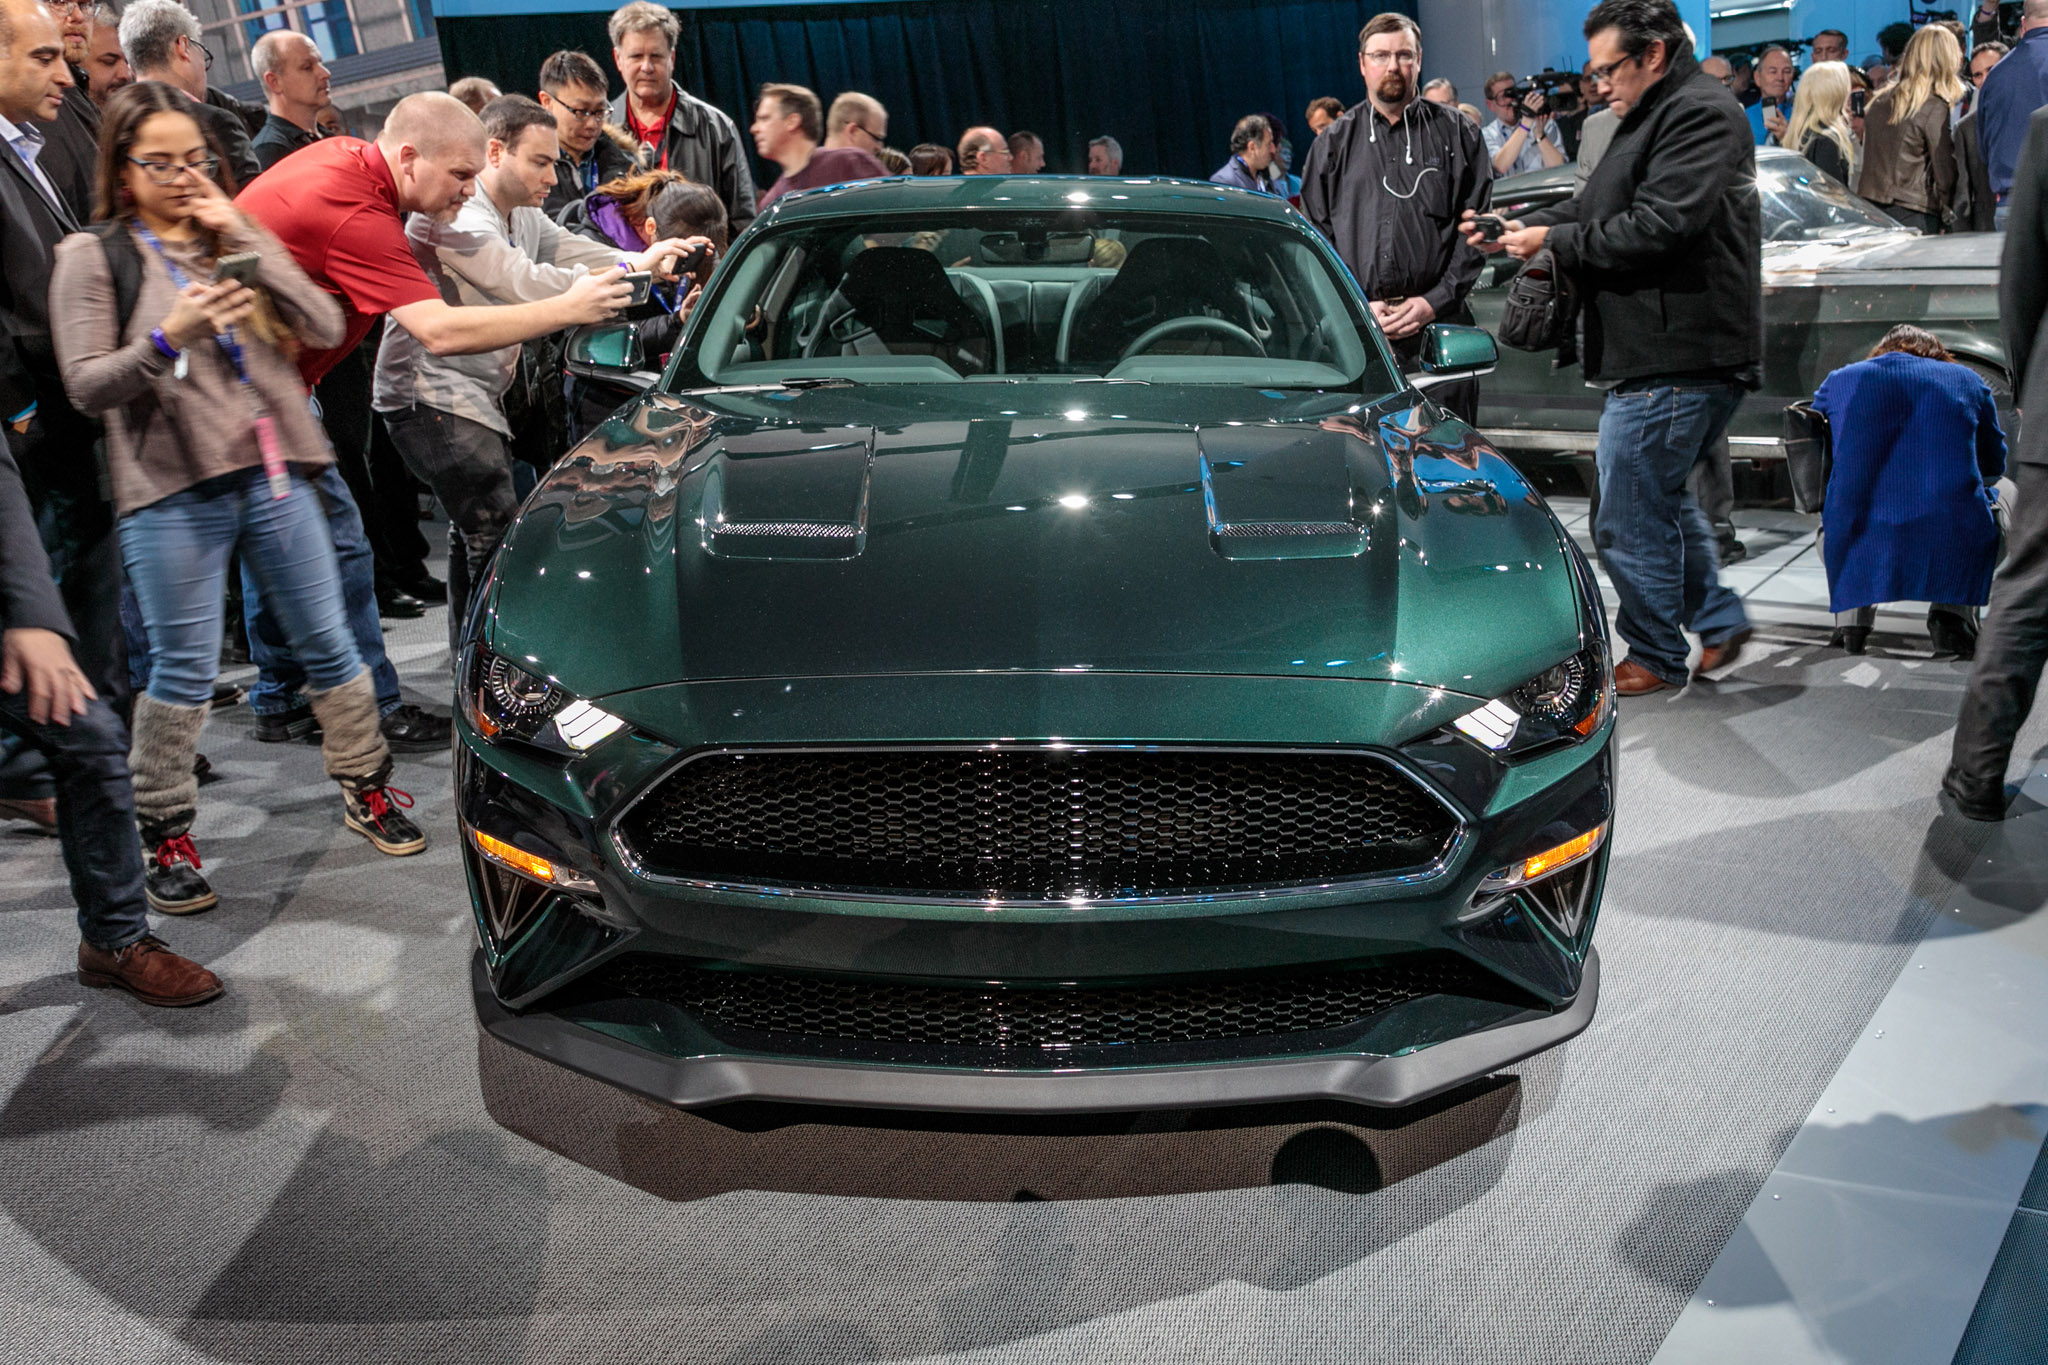 Ford shows off new and original Bullitt Mustangs